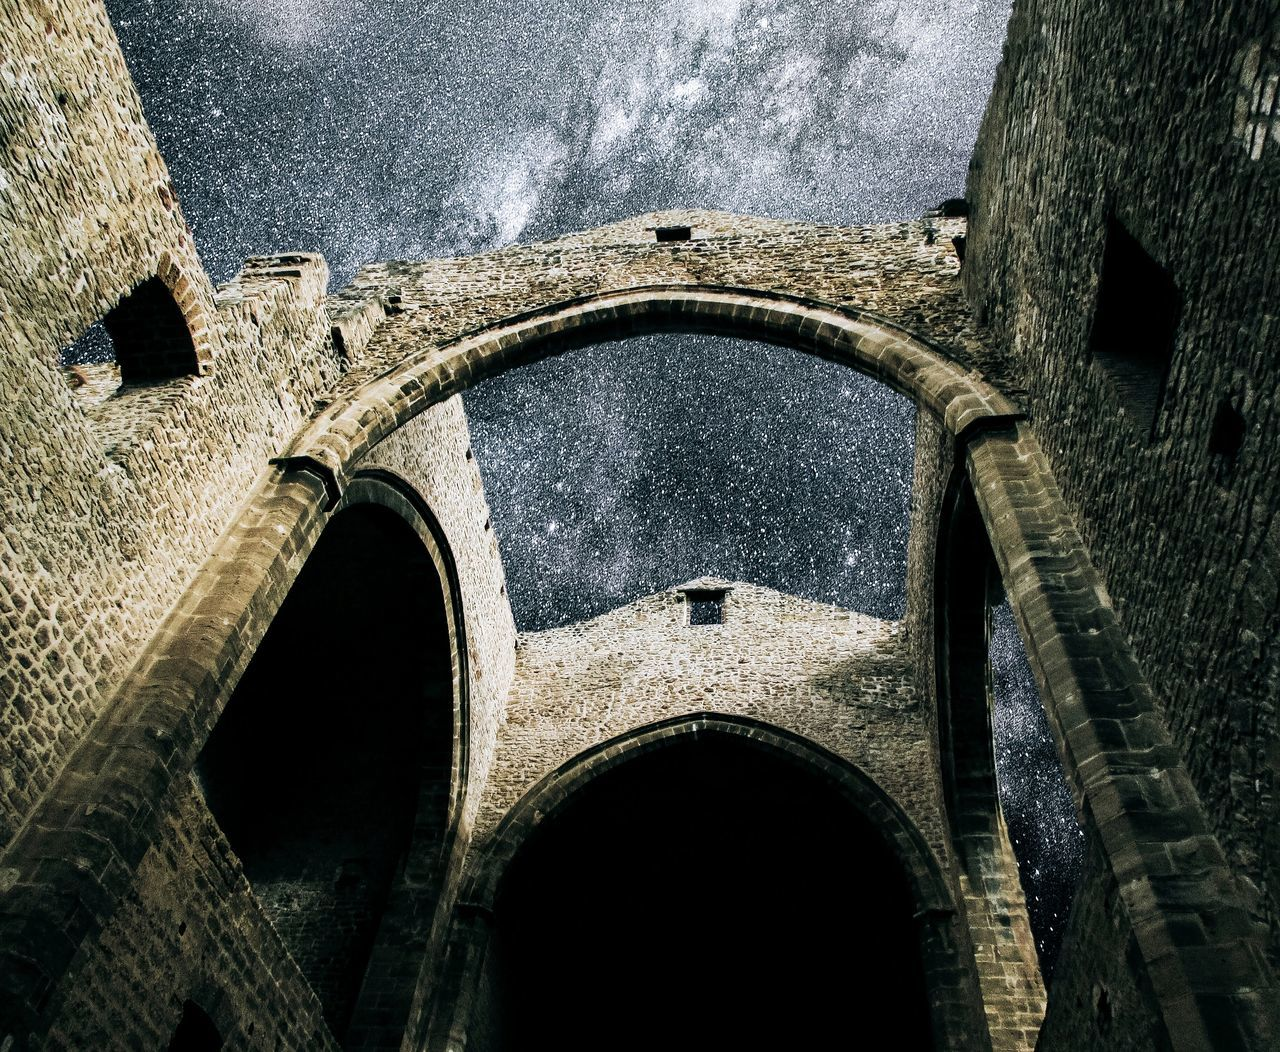 Low angle view of arched structure against the sky